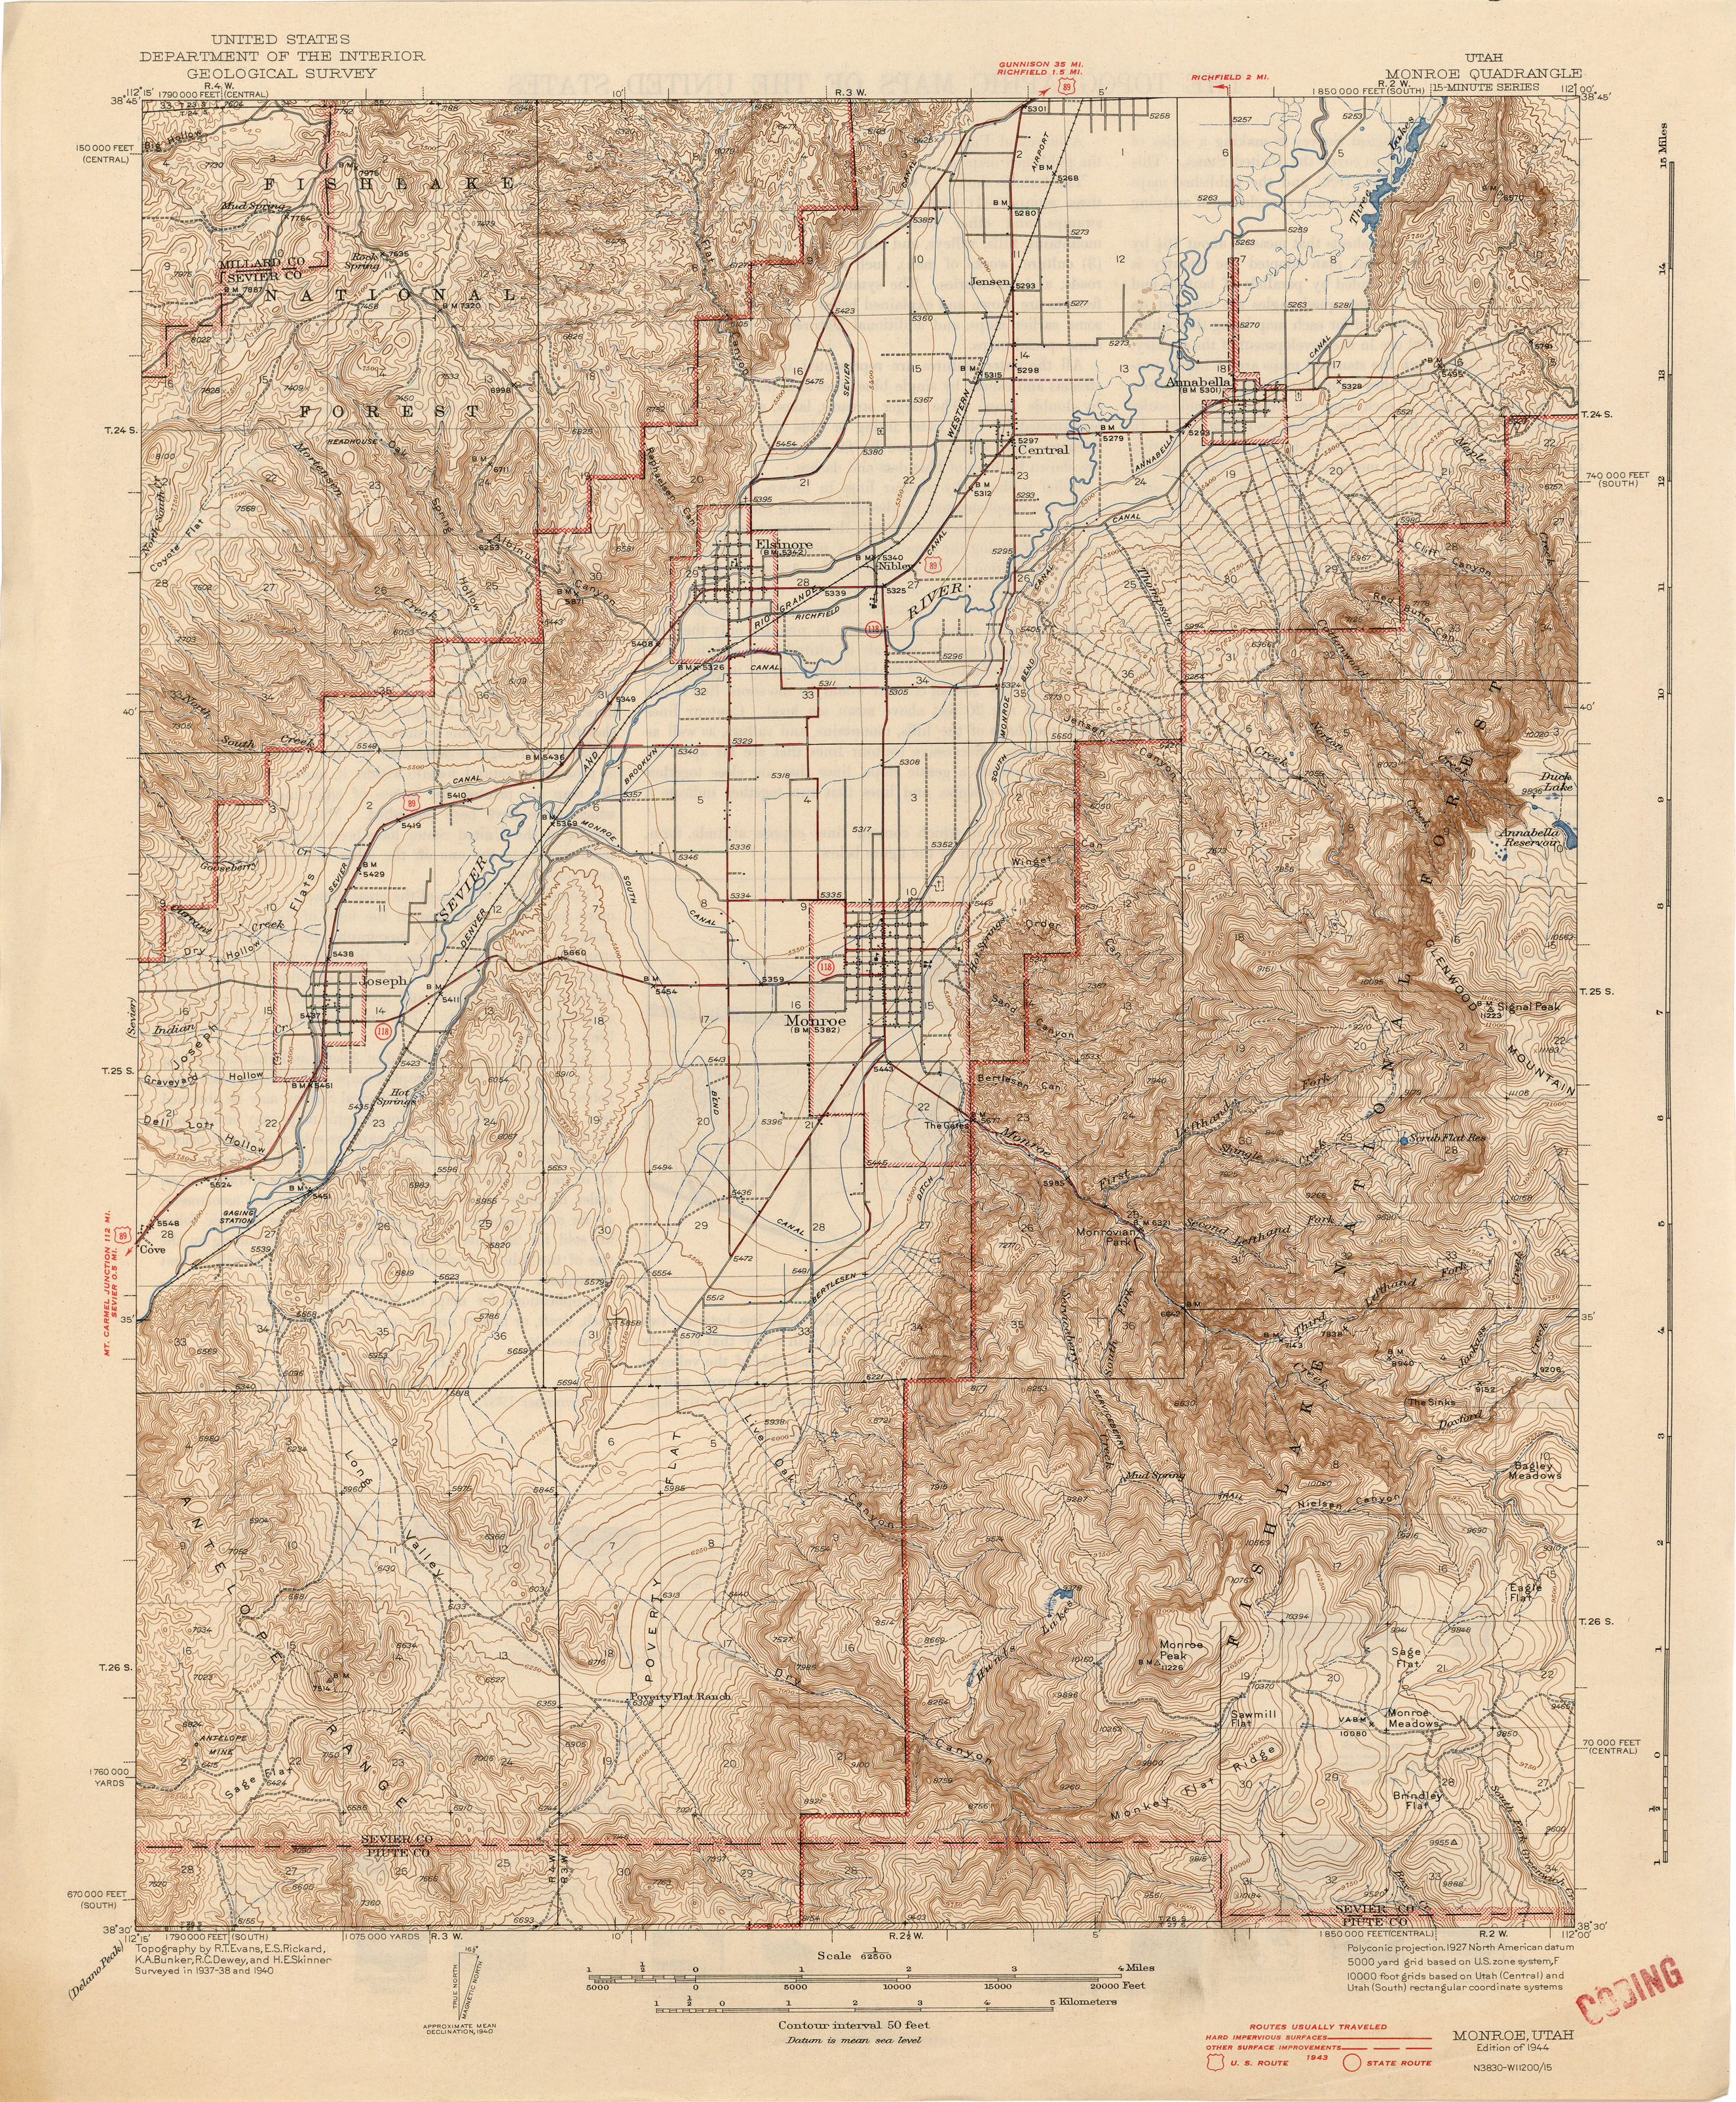 Utah Historical Topographic Maps Perry Castaneda Map Collection